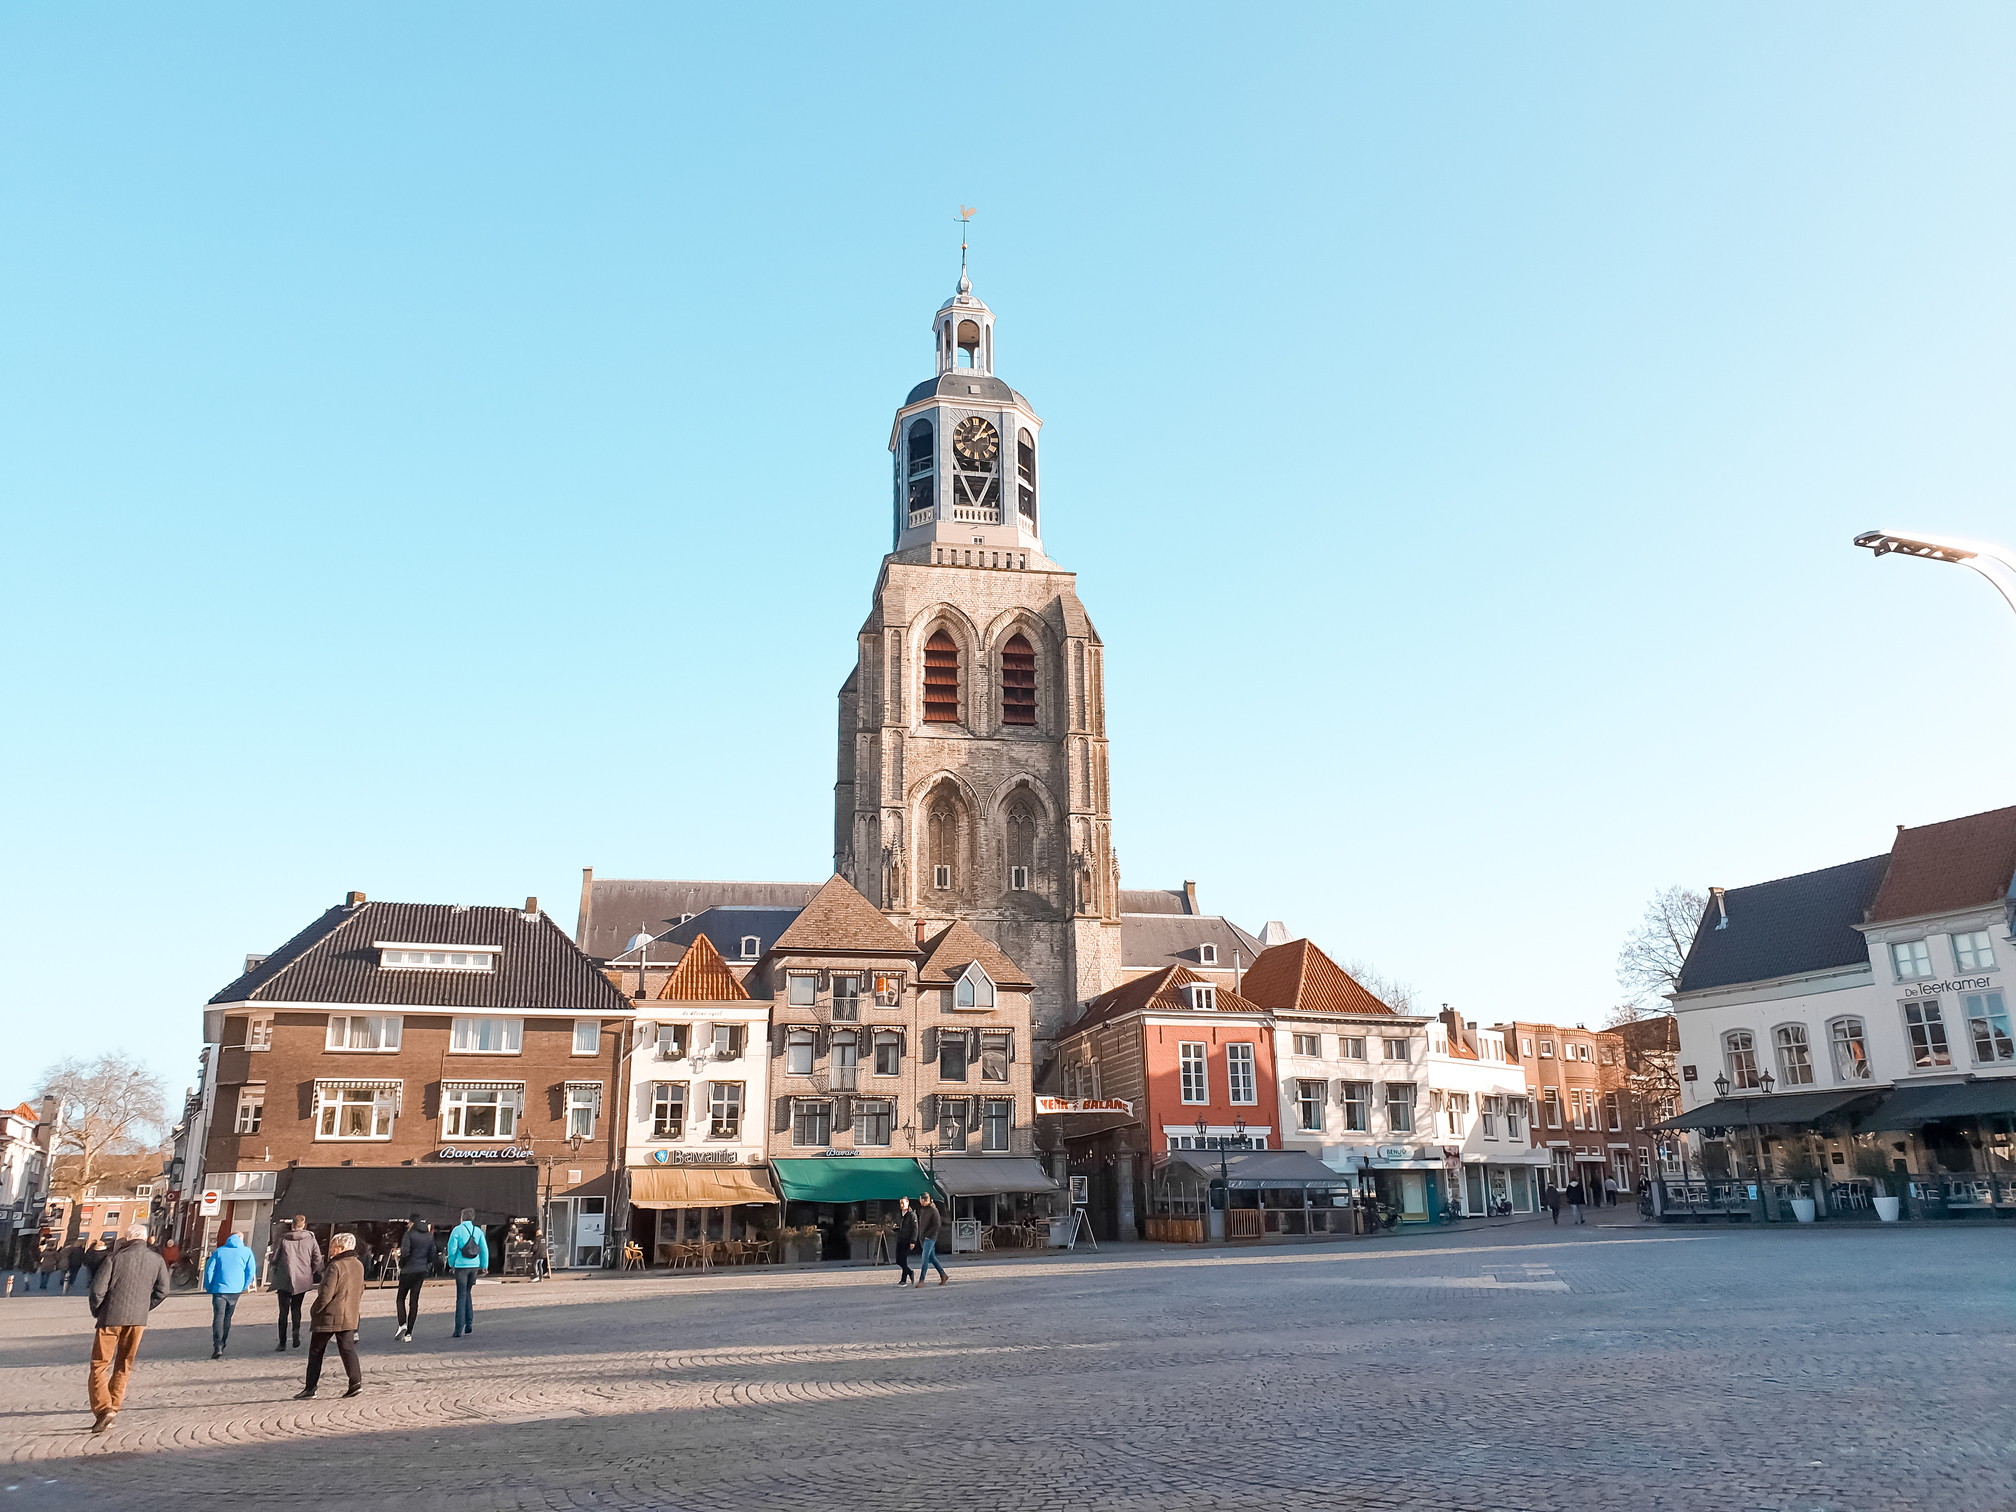 View of Grote Markt, the central square in Bergen op Zoom. Things to do and what to see when traveling to Bergen op Zoom. Perfect for a day trip or staying the entire weekend. Travel the Netherlands and find charming Dutch towns. #discover #europe #vacation